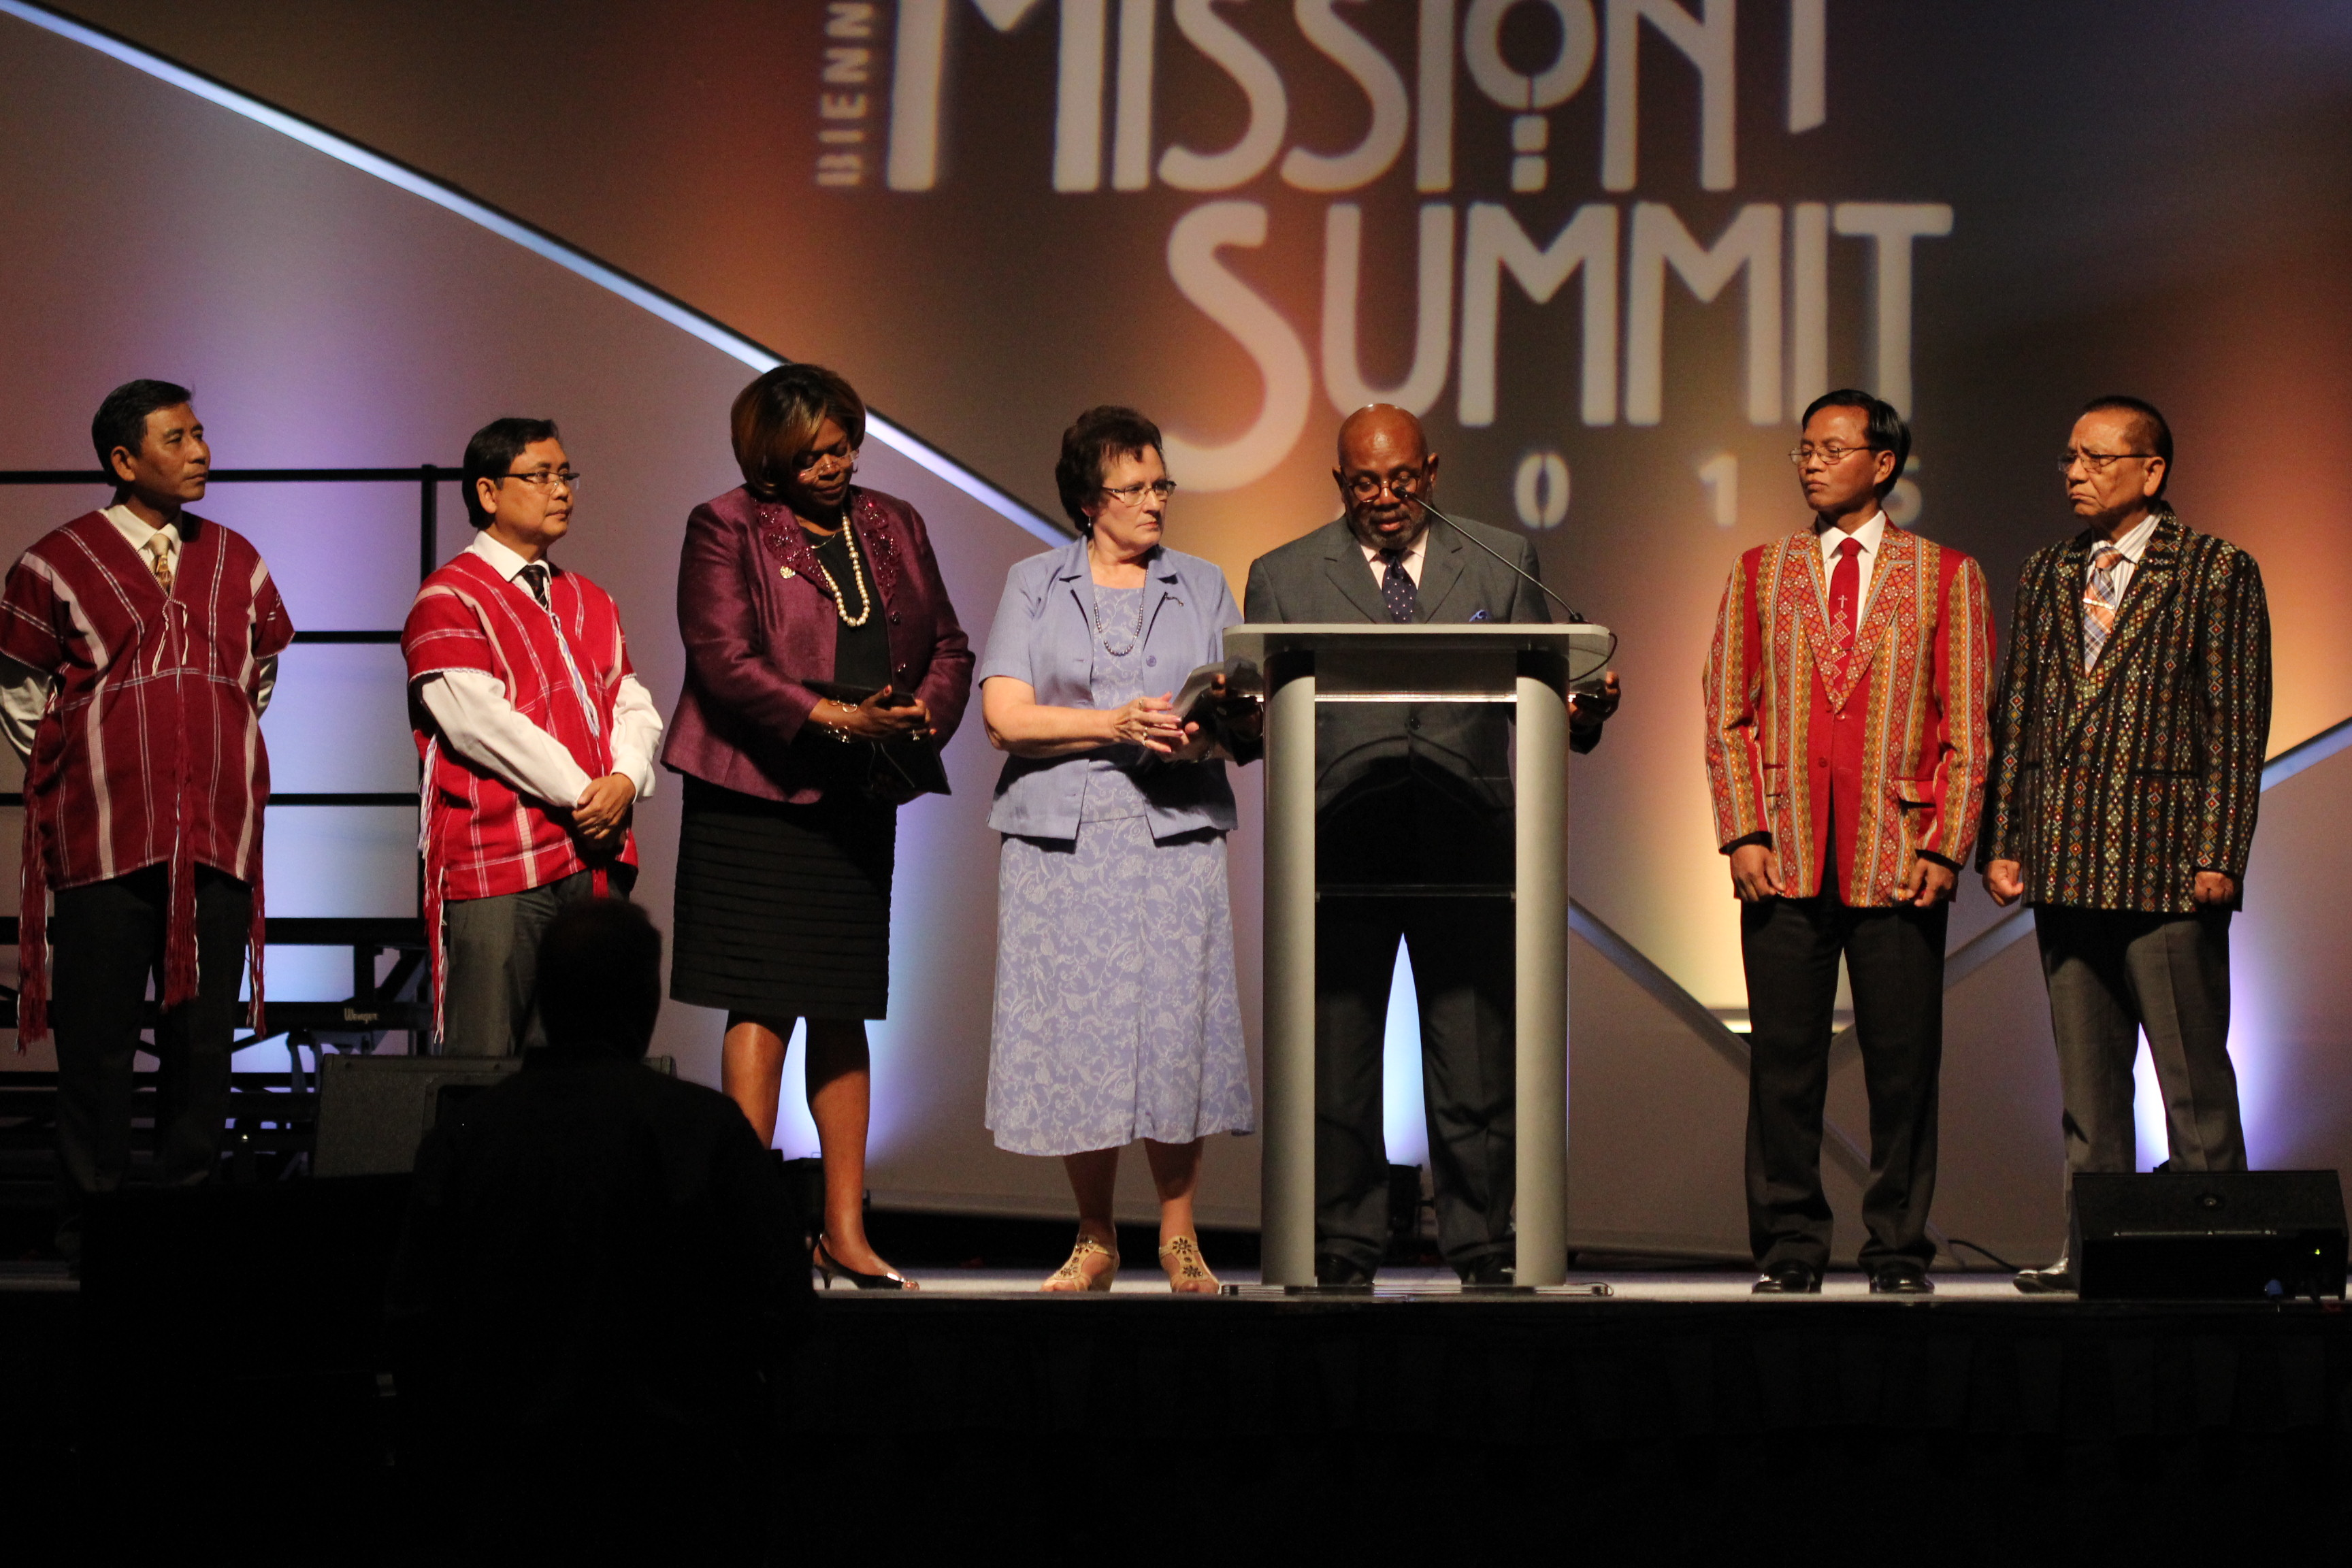 ABC Mission Summit042